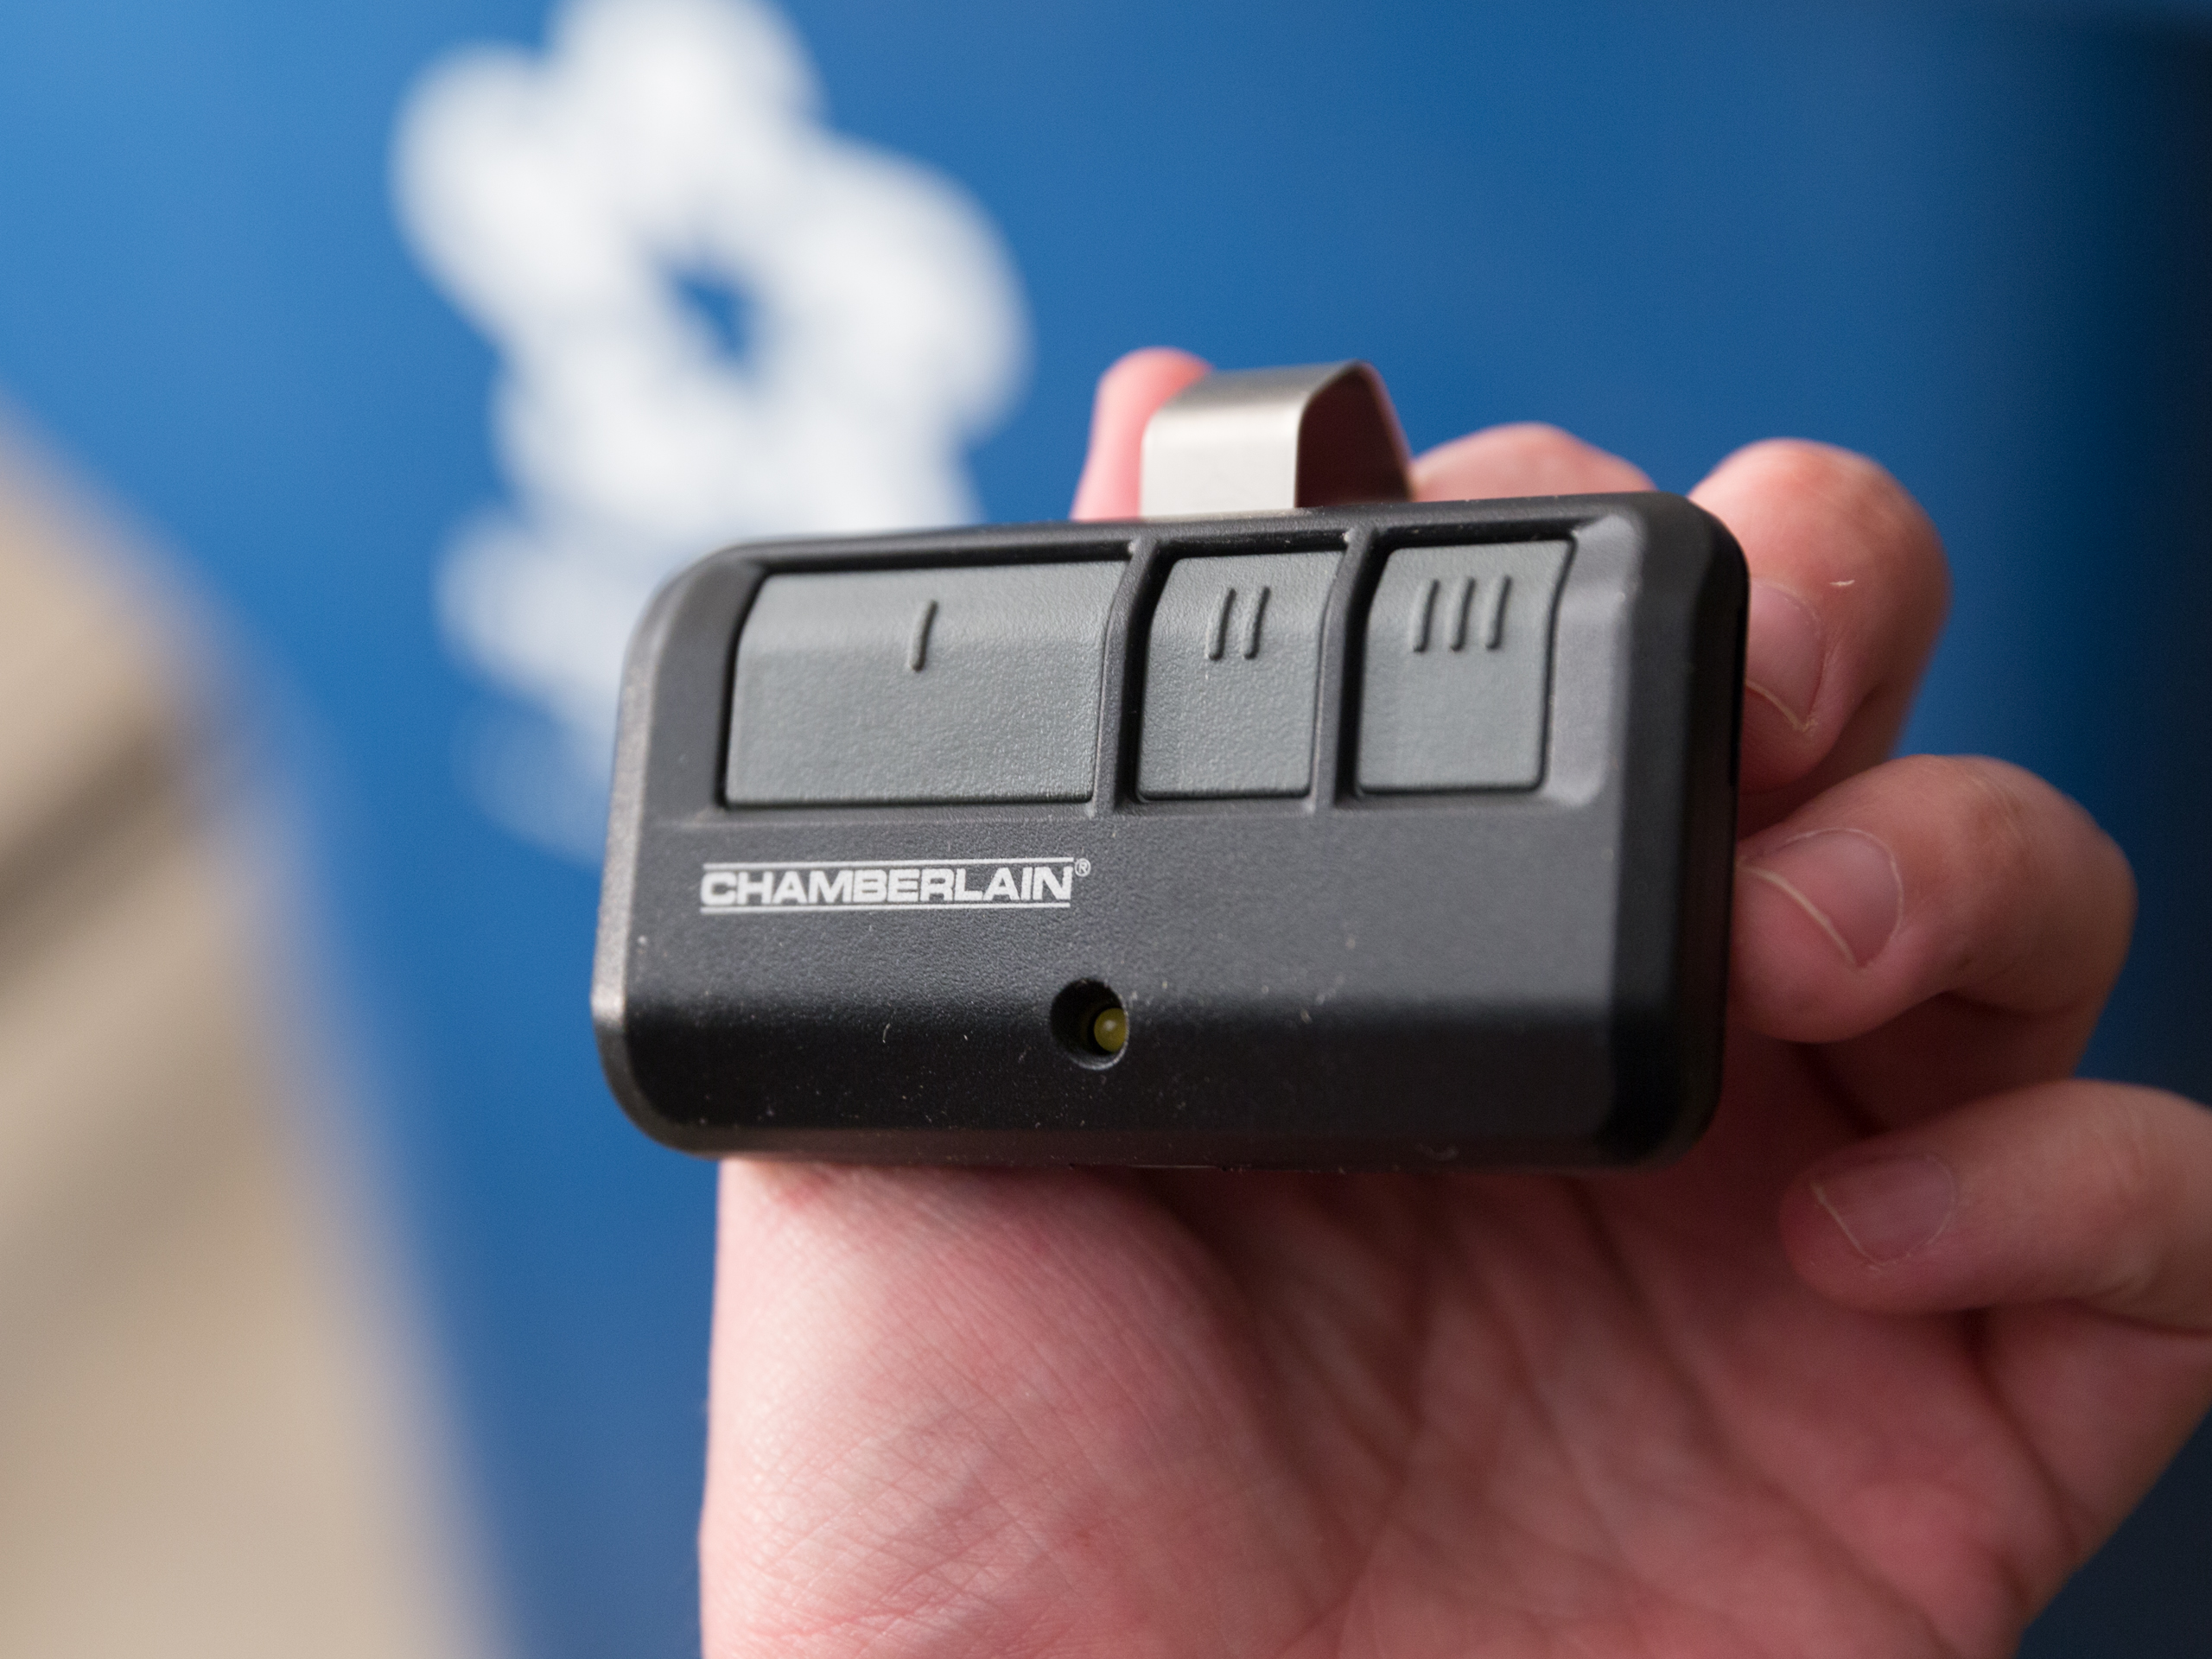 chamberlain-wifi-garage-door-opener-product-photos-11.jpg